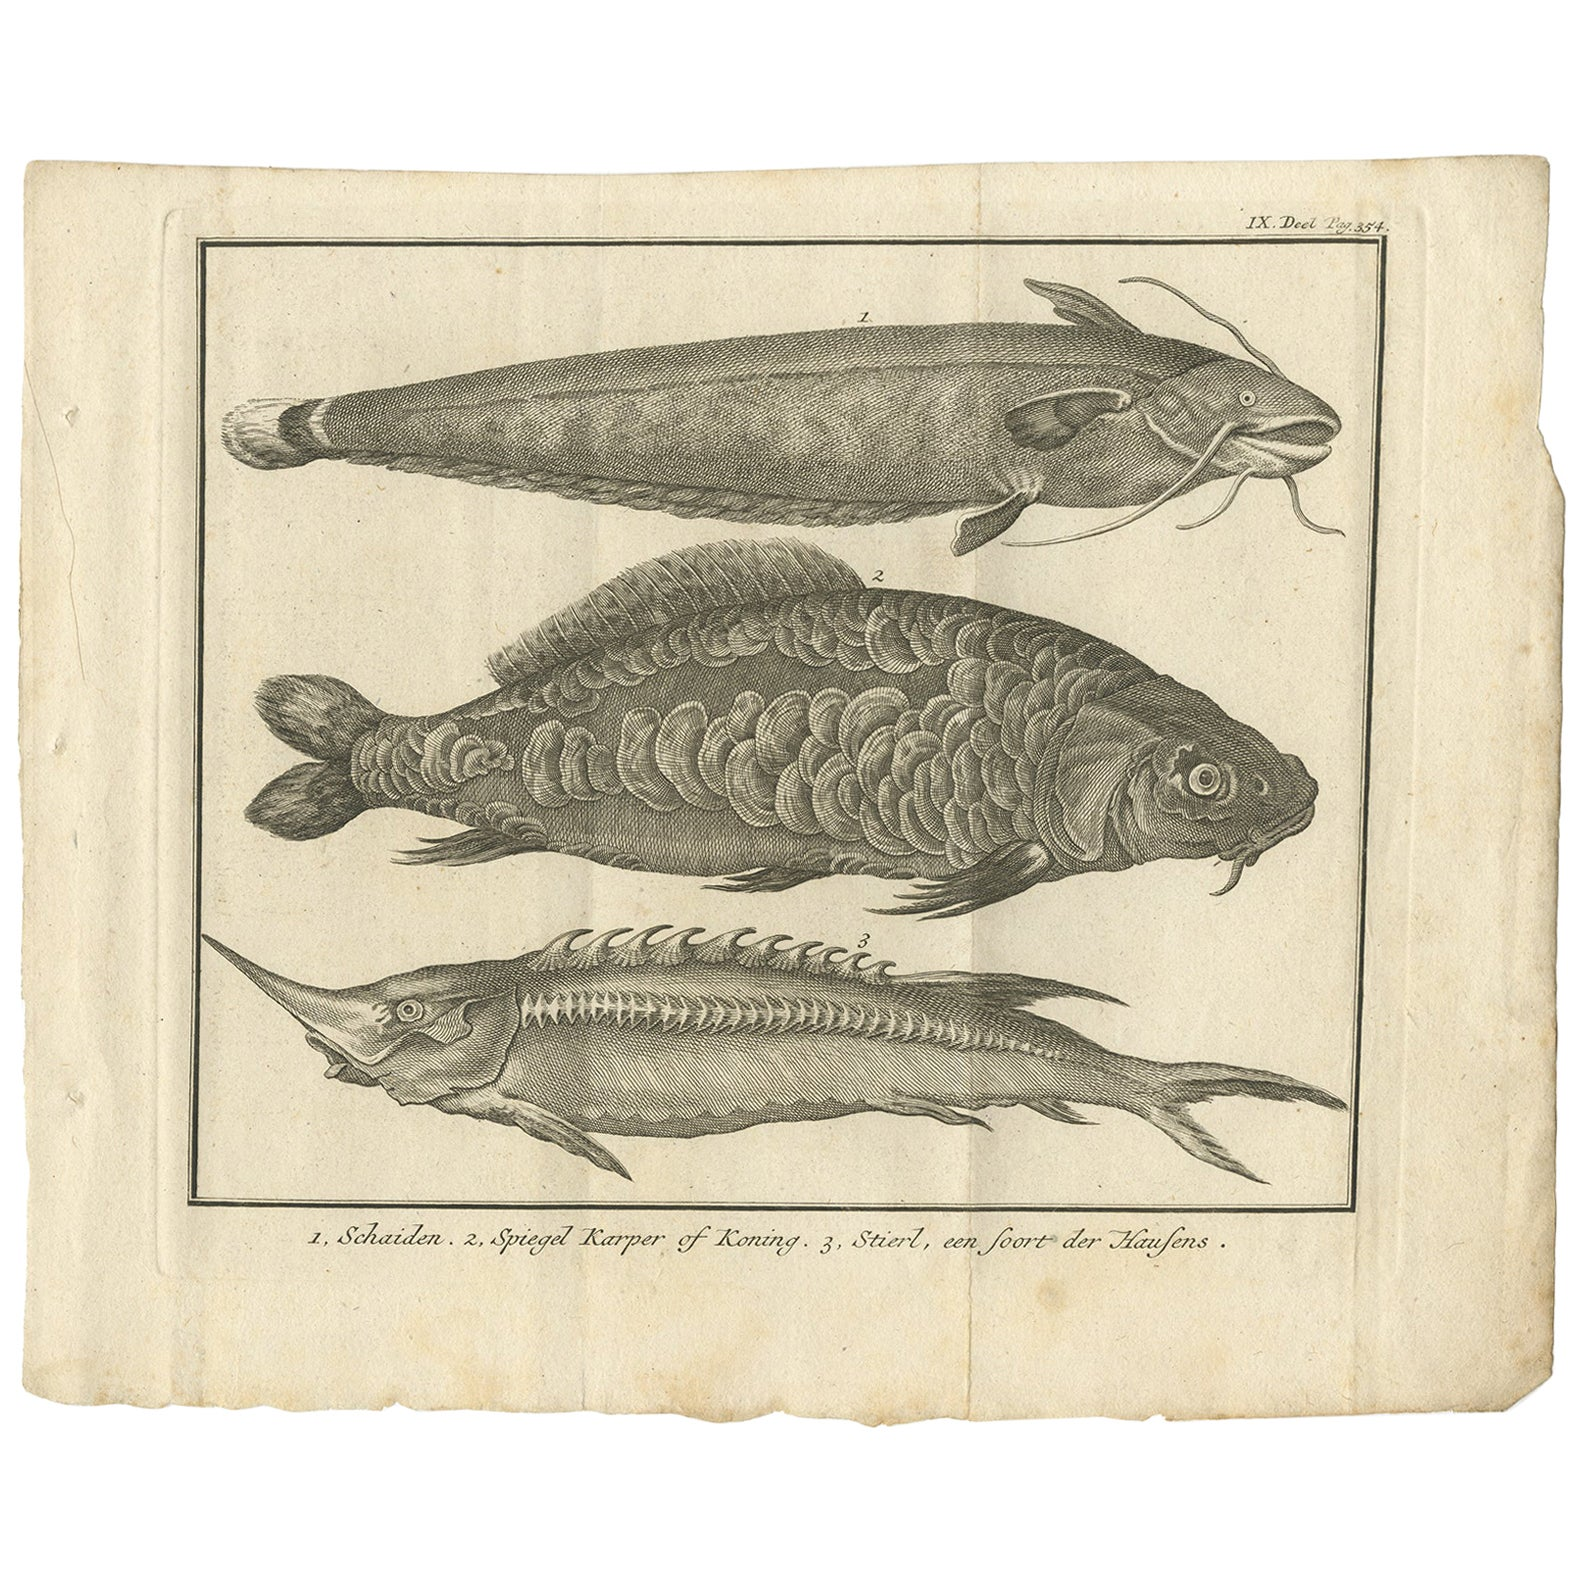 Antique Print of a Catfish and other Fish Species by Salmon, 1737